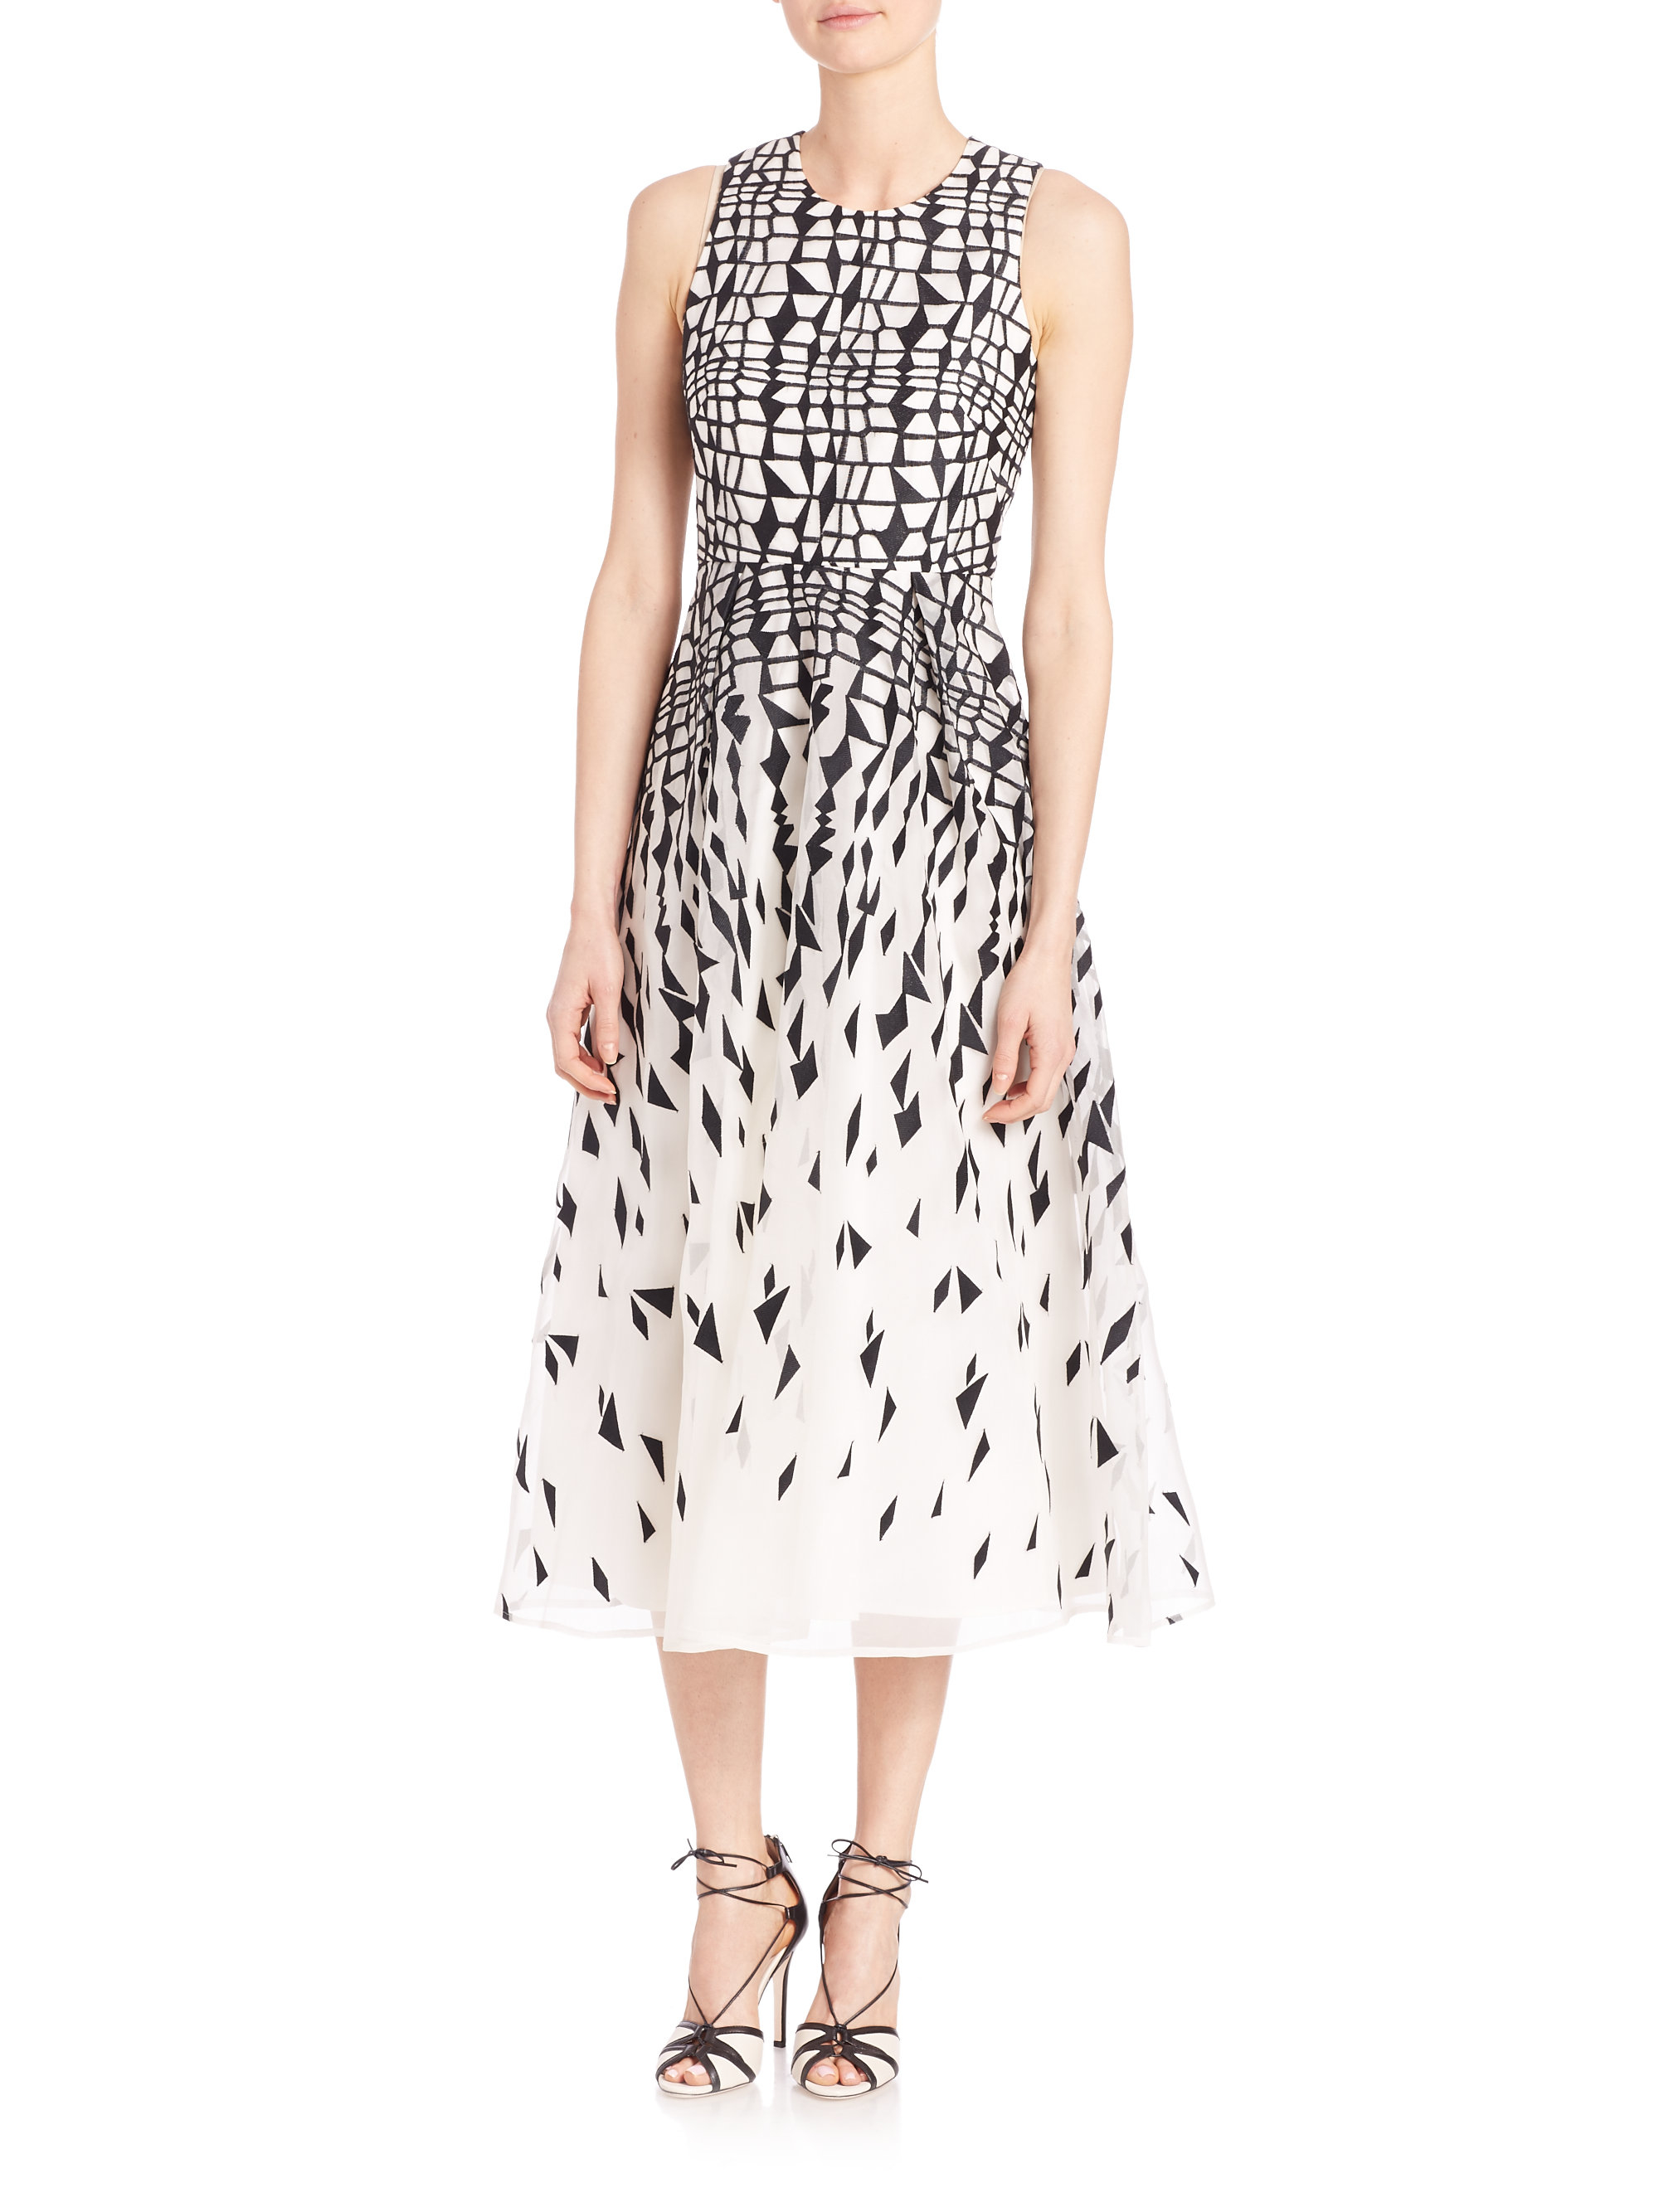 L K Bennett Dresses Fashion Dresses